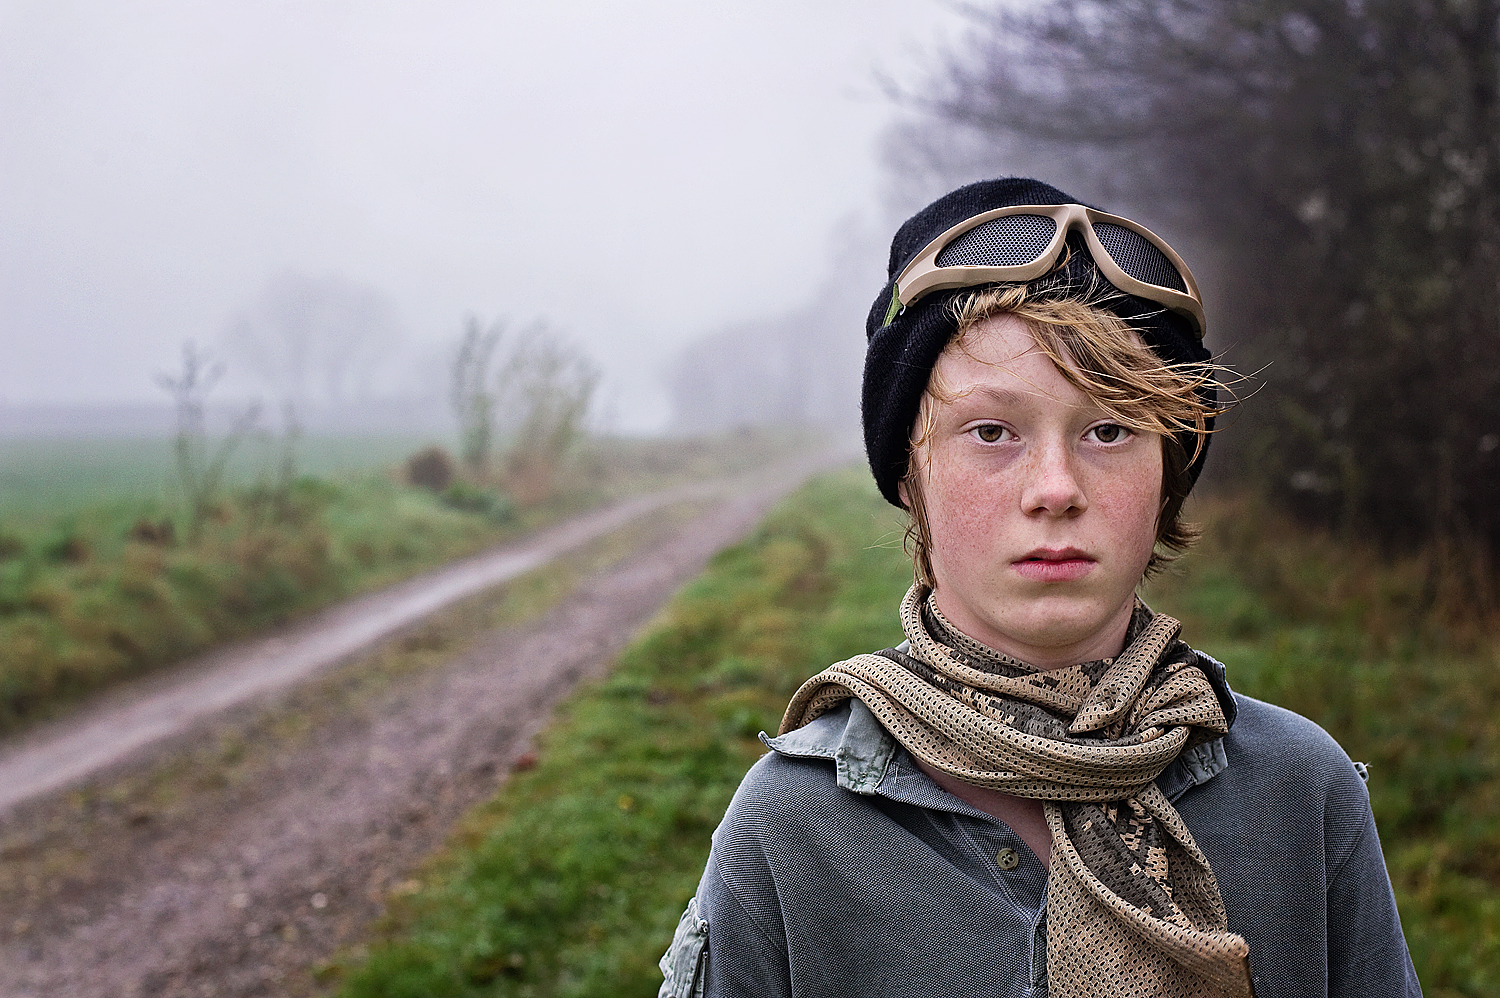 Portrait of boy in the Devon mist